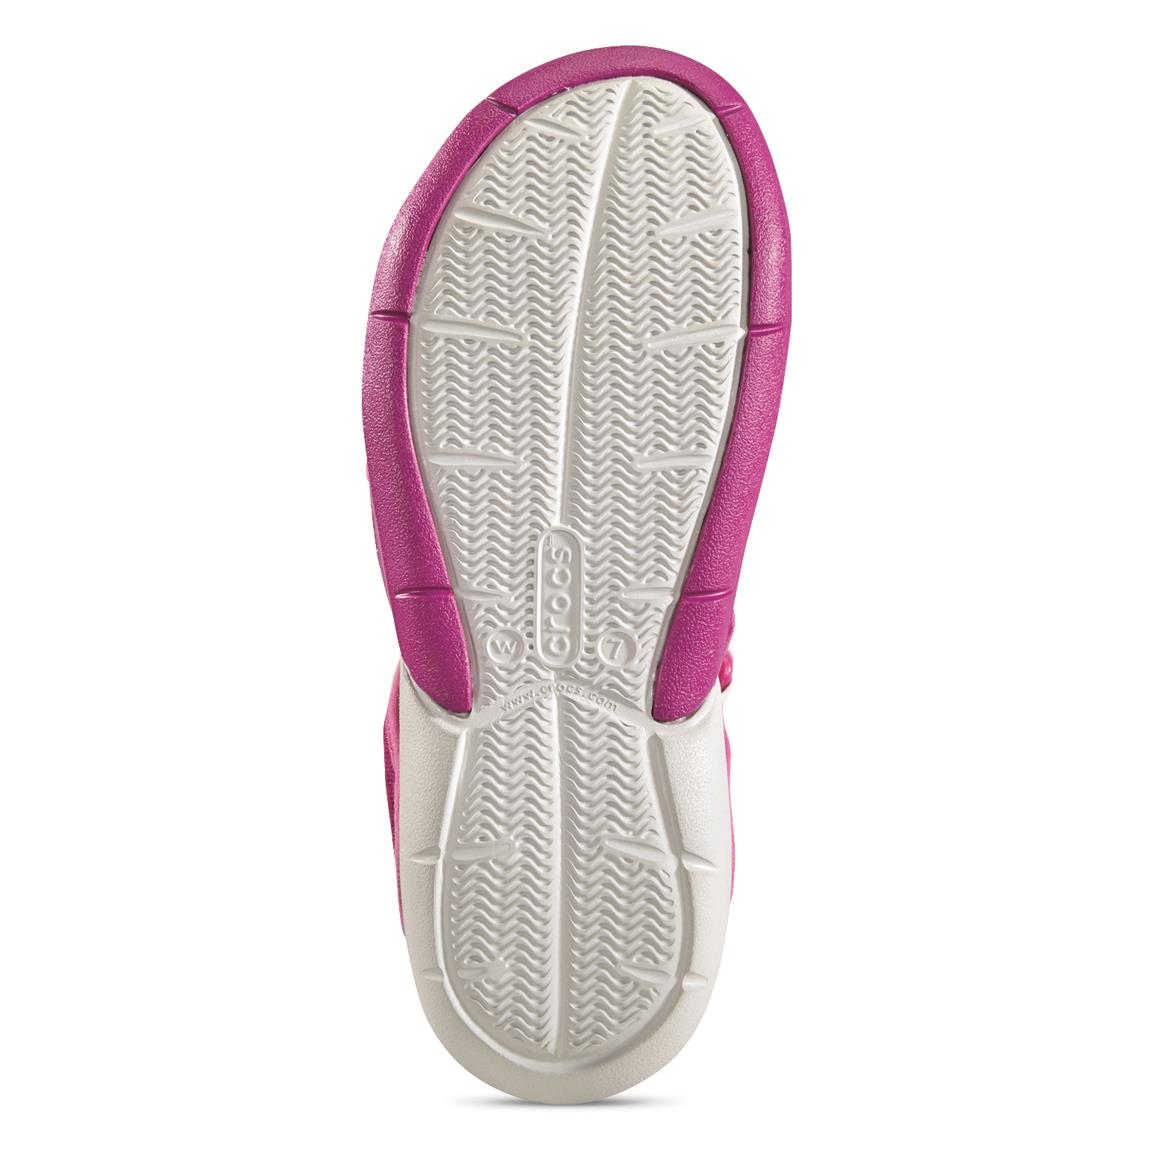 Grooved outsole